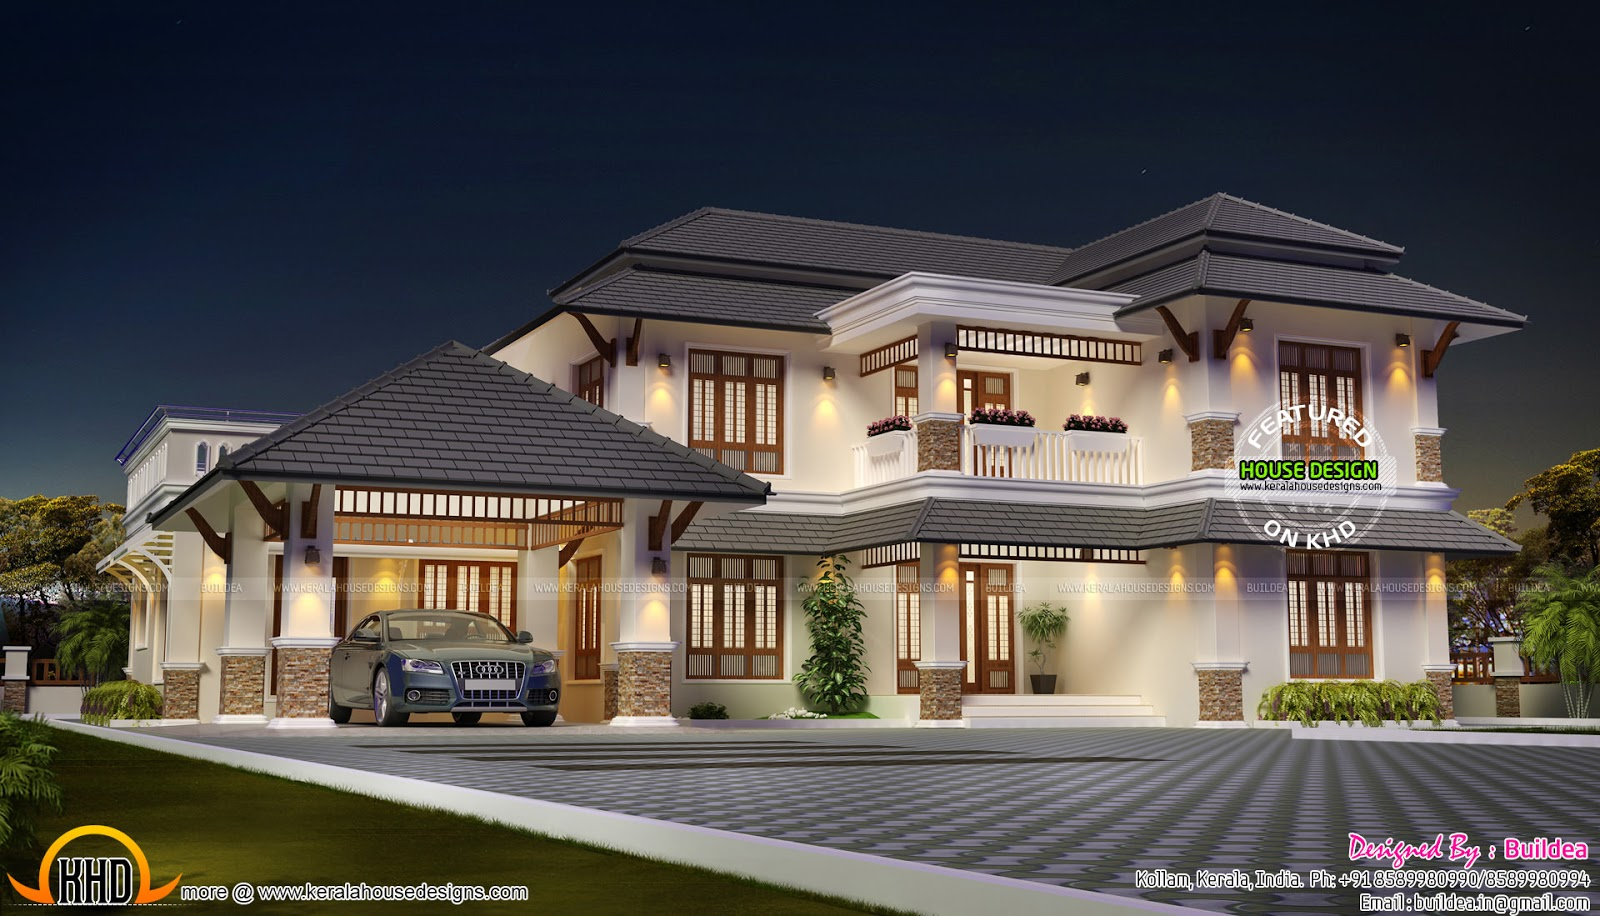 Aesthetic looking house plan kerala home design and for Home designs 4 you